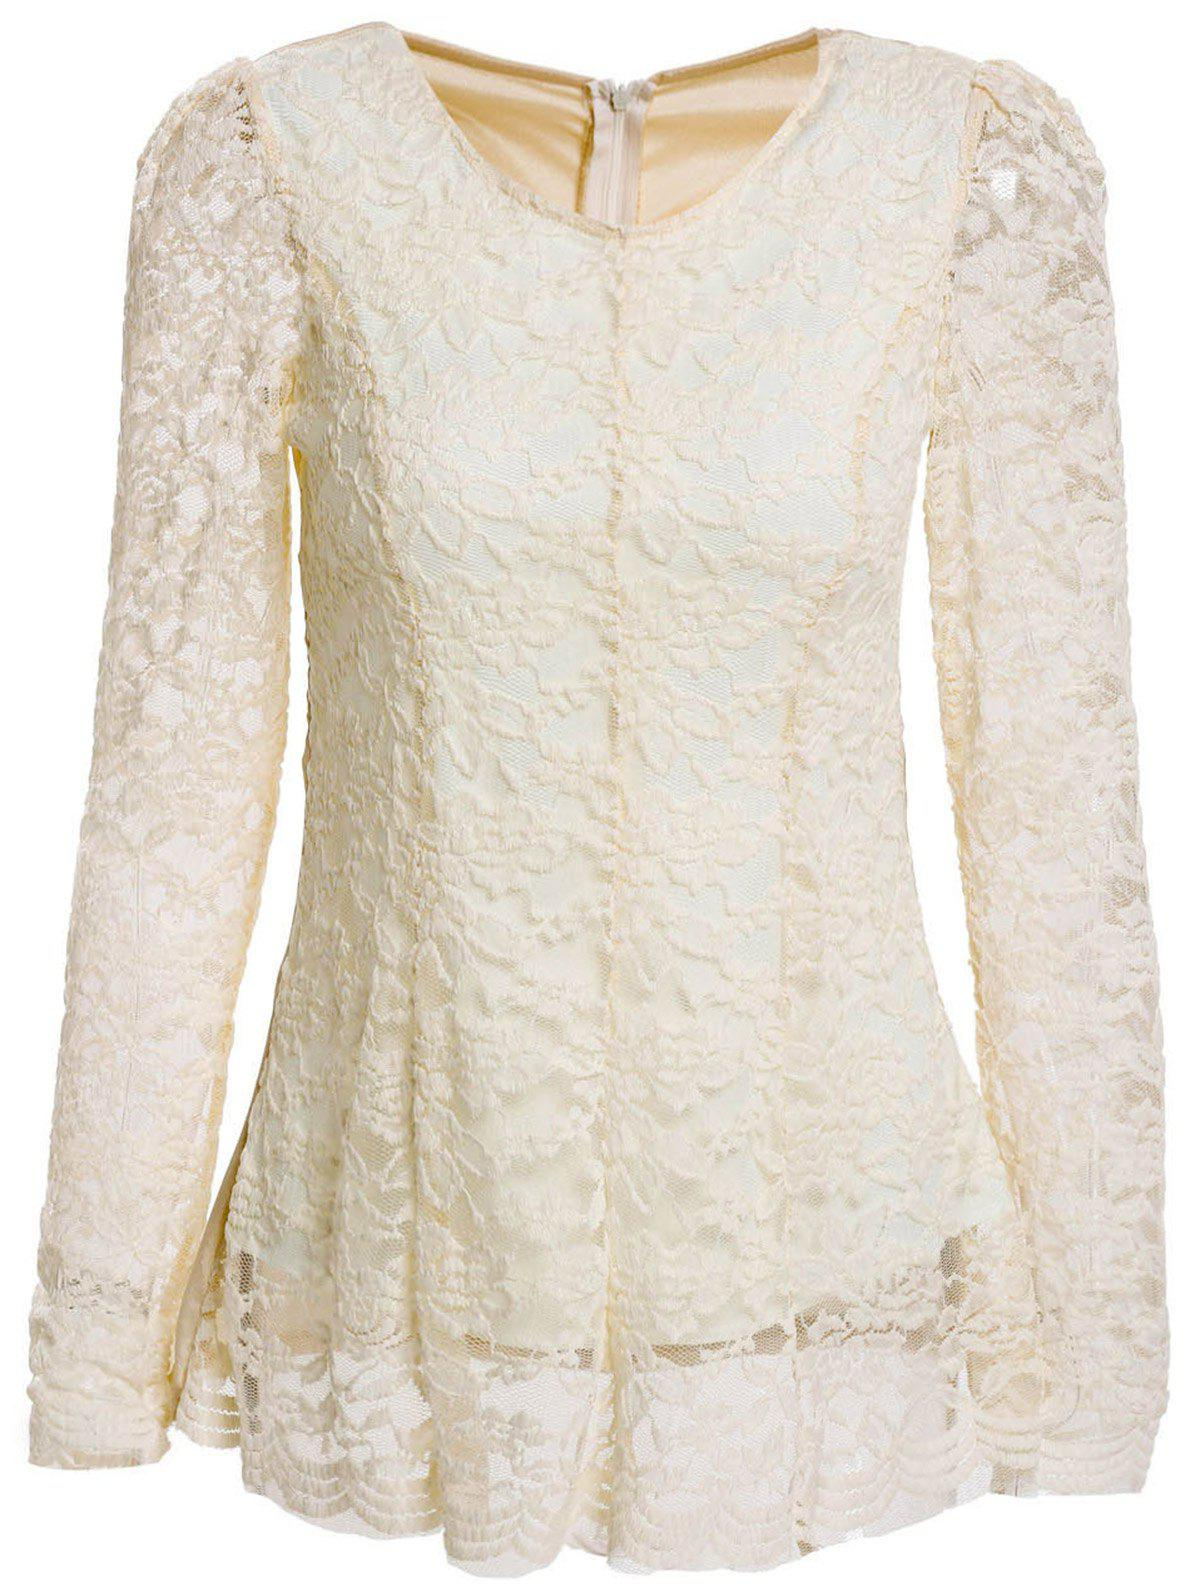 Women's Graceful Flouncing Floral Embroidery Long Sleeves Lace Blouse